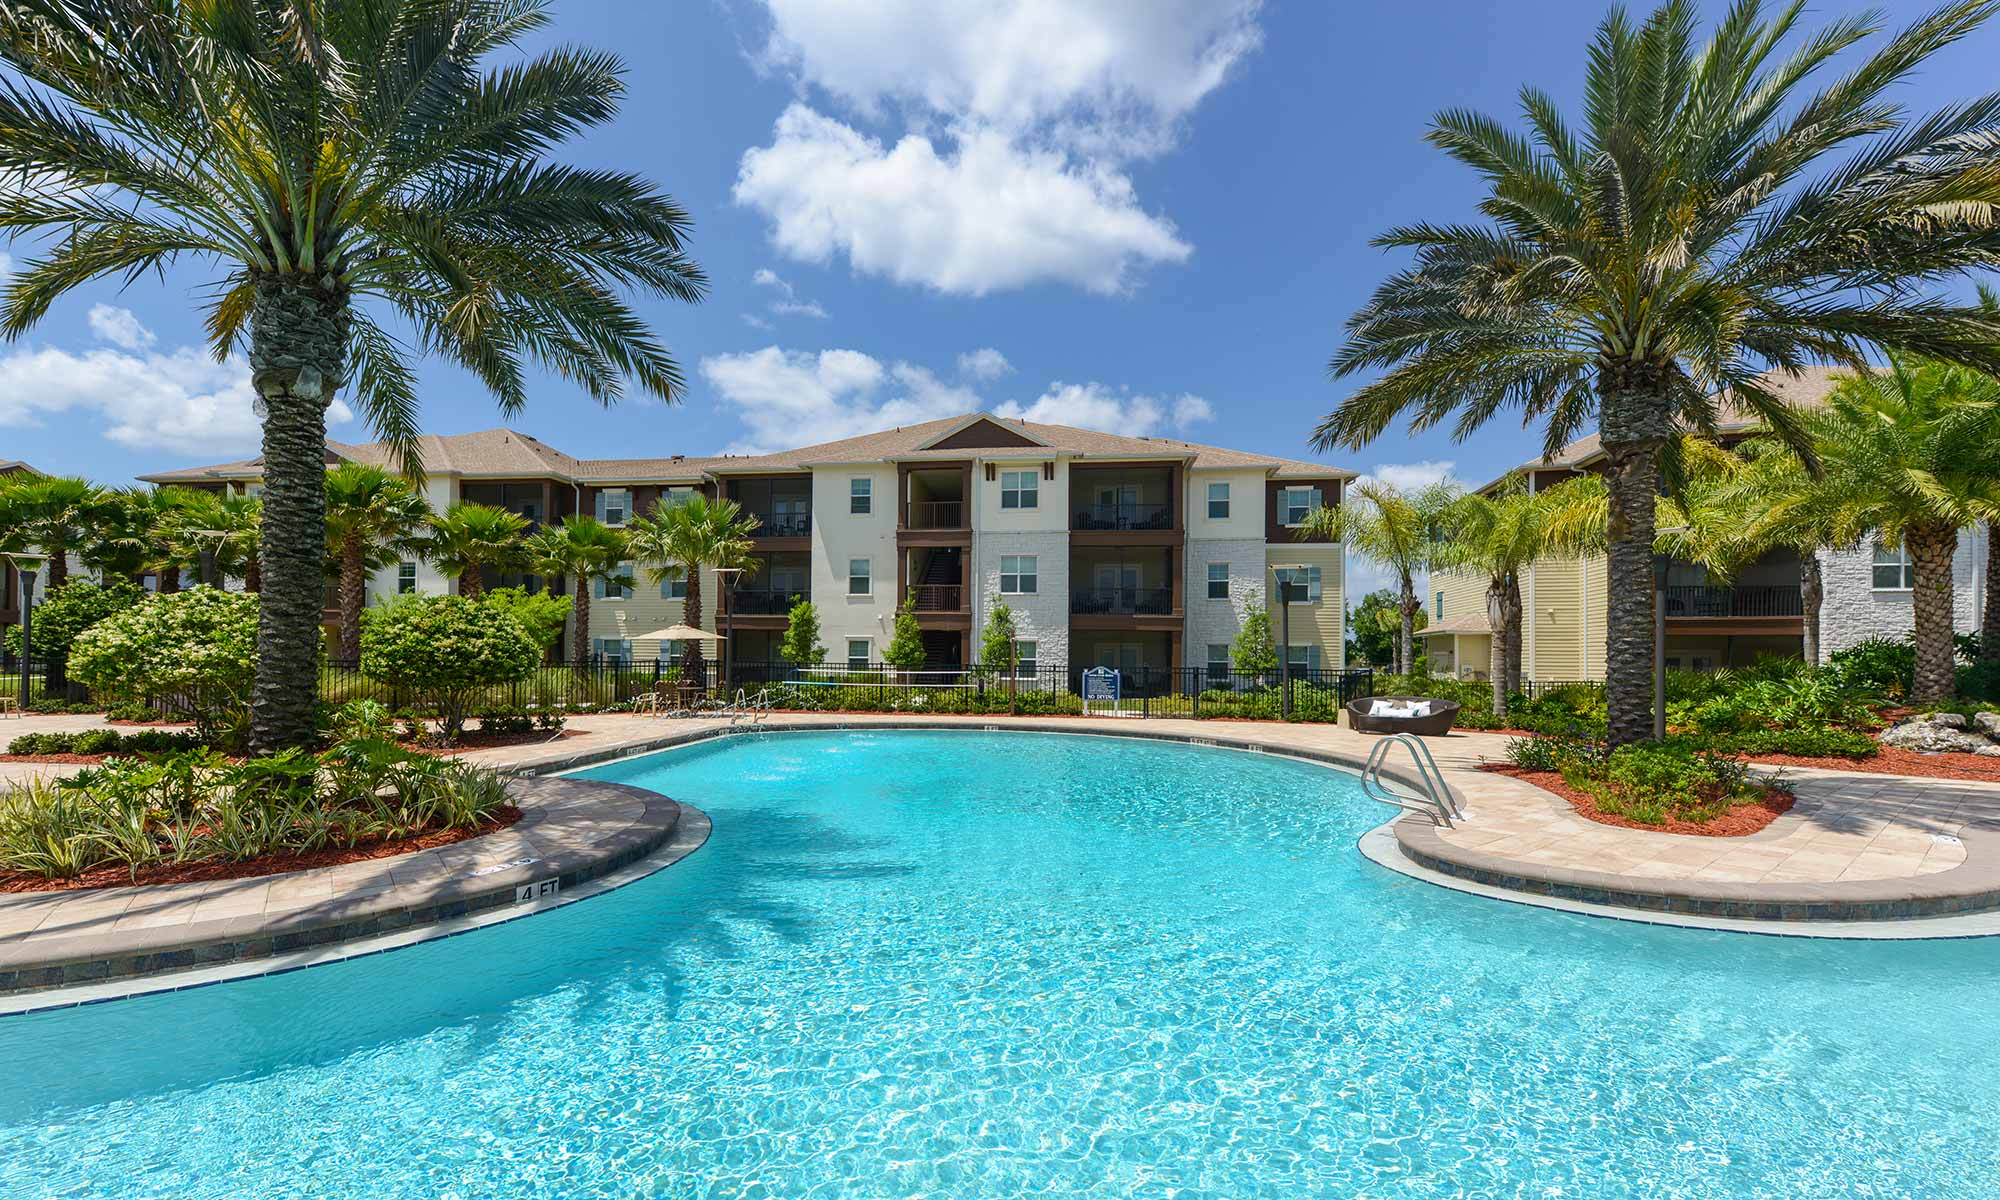 Southside jacksonville fl apartments for rent cabana for Best places to live in jacksonville fl